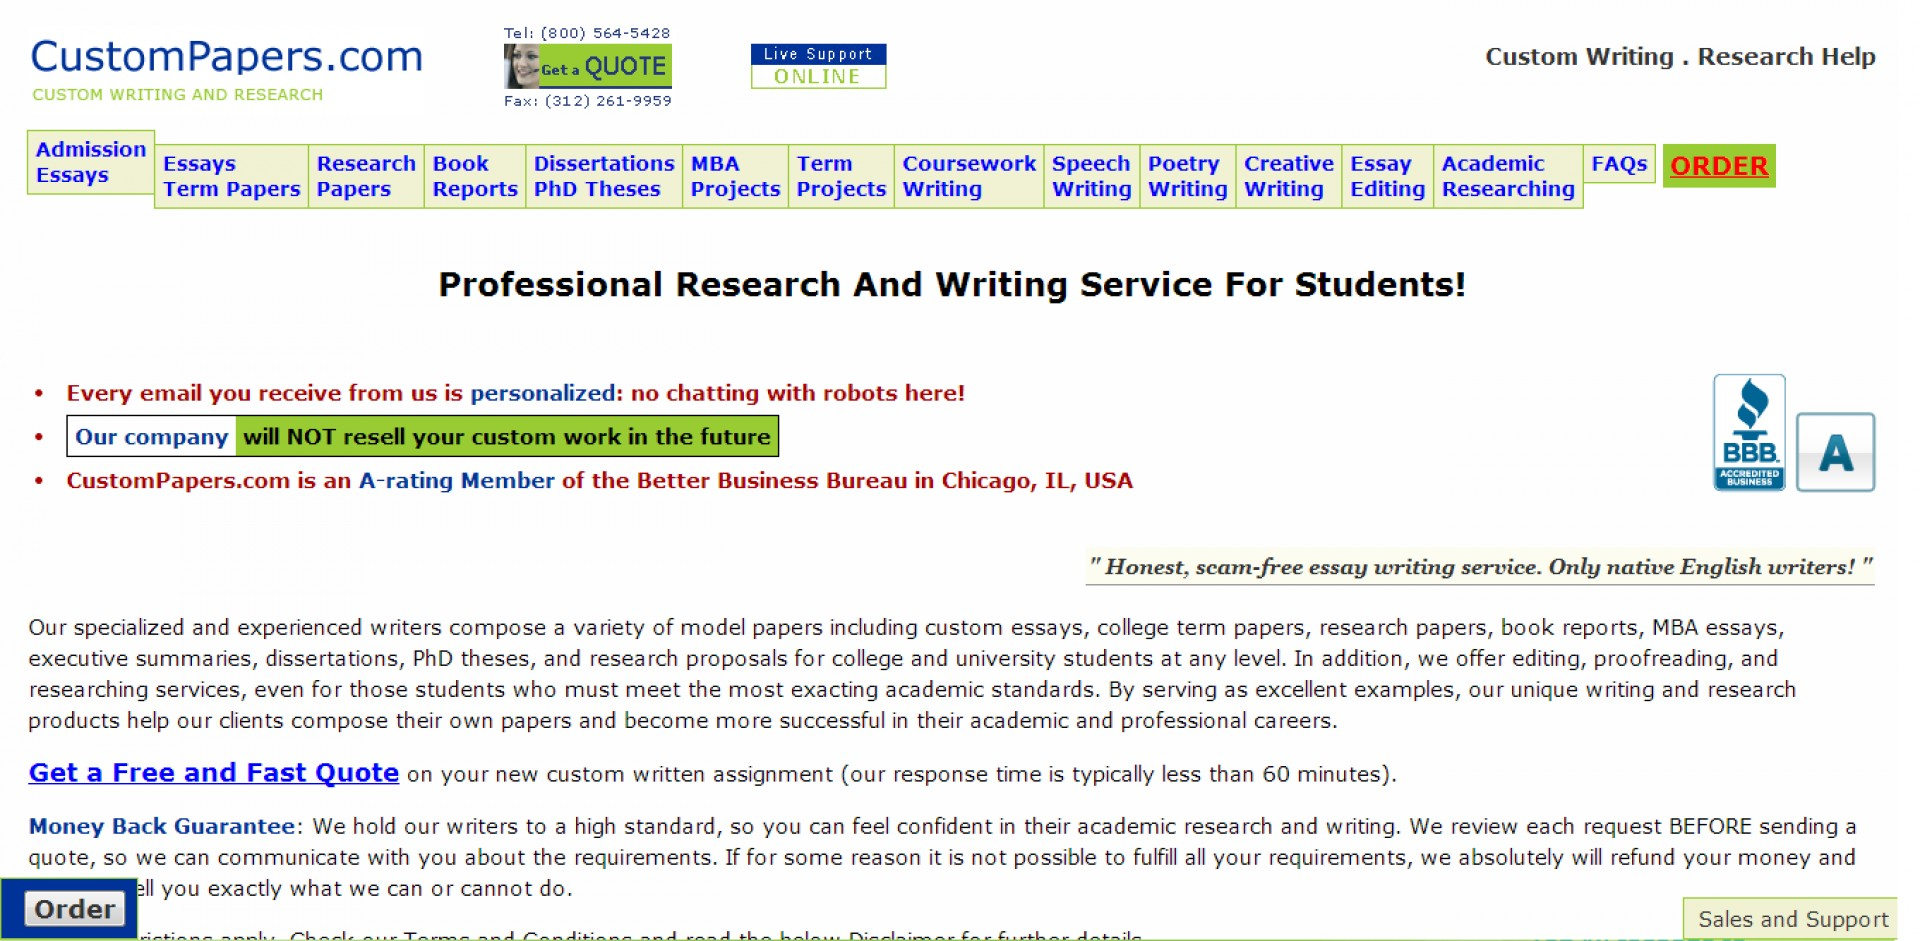 010 Top Essay Writing Reviews Example Custom Essays Review Services Info Stanford Customp Best Service Unique 1920